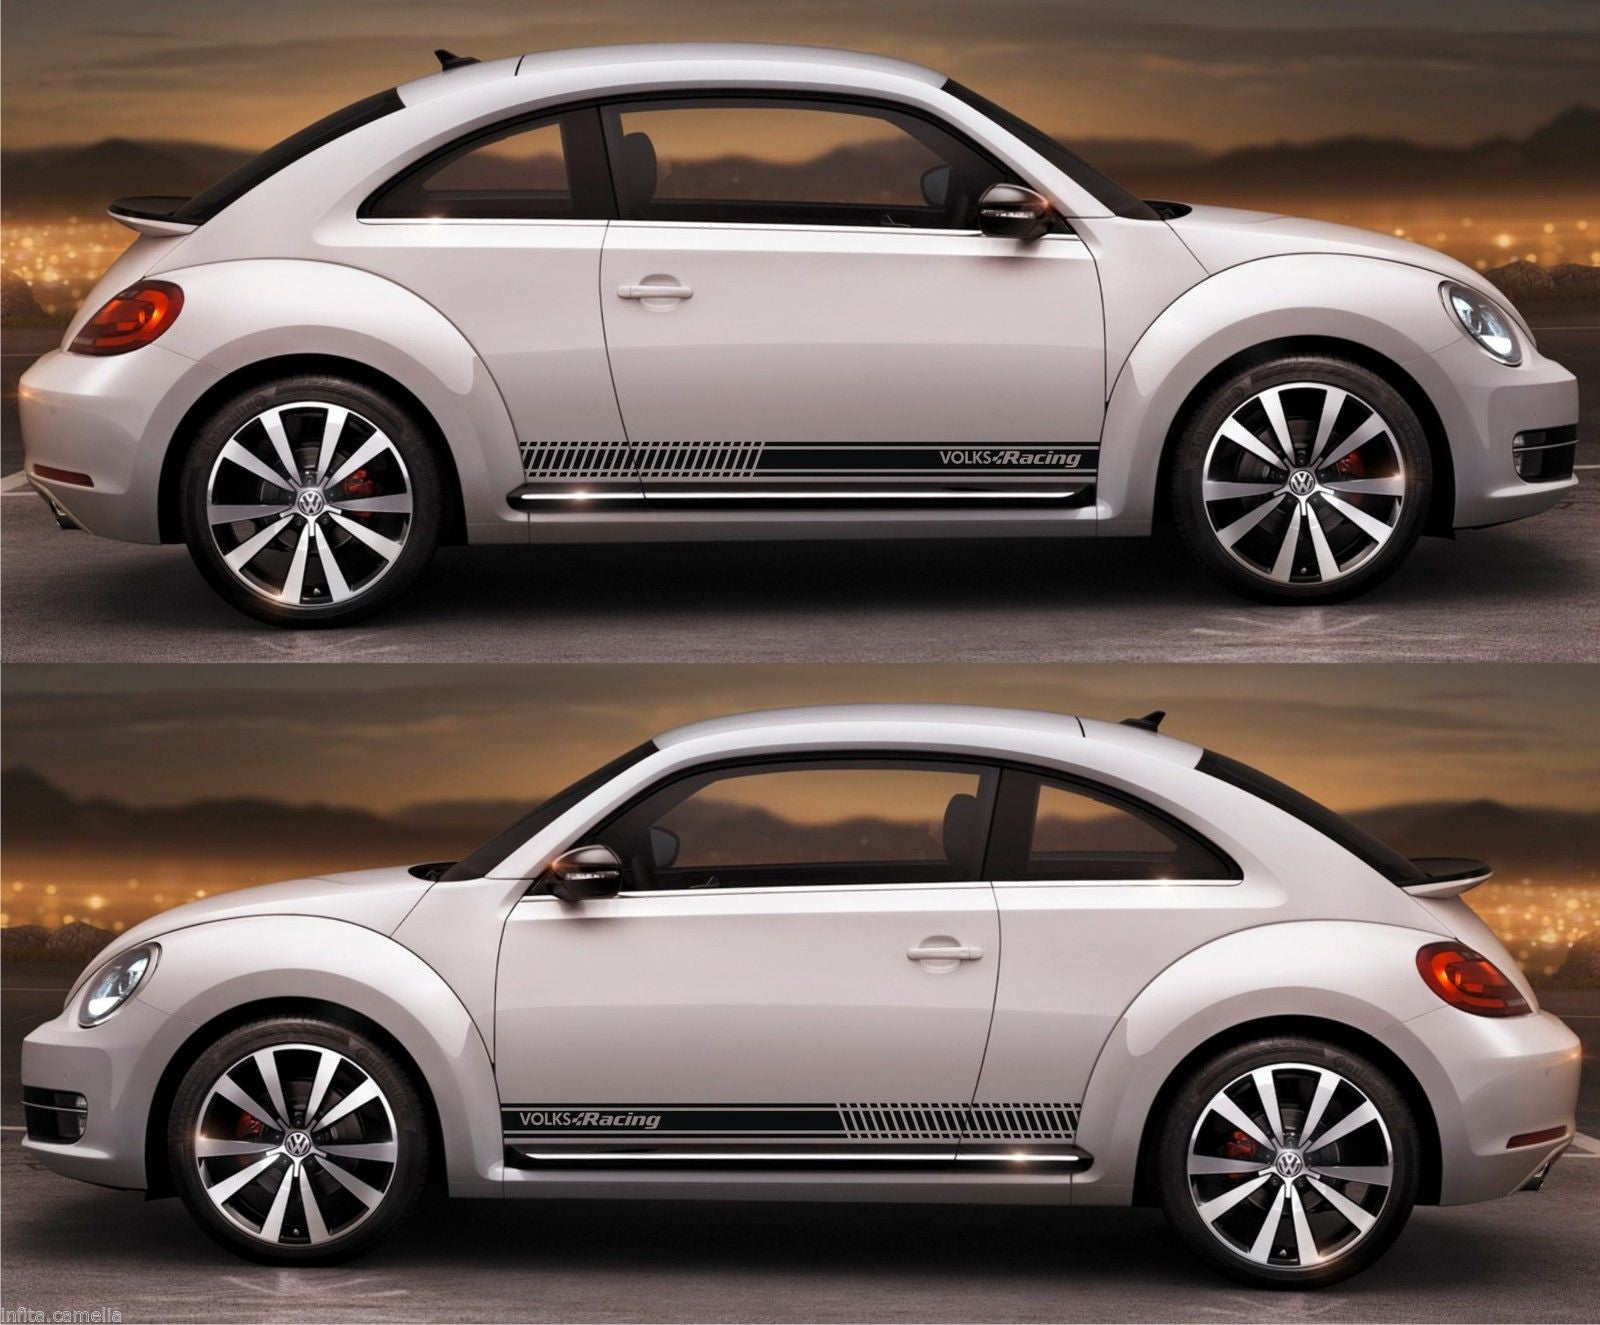 Ssk 088 volkswagen volks racing beetle r line gsr turbo tsi turbo stripe kit sticker infinity270